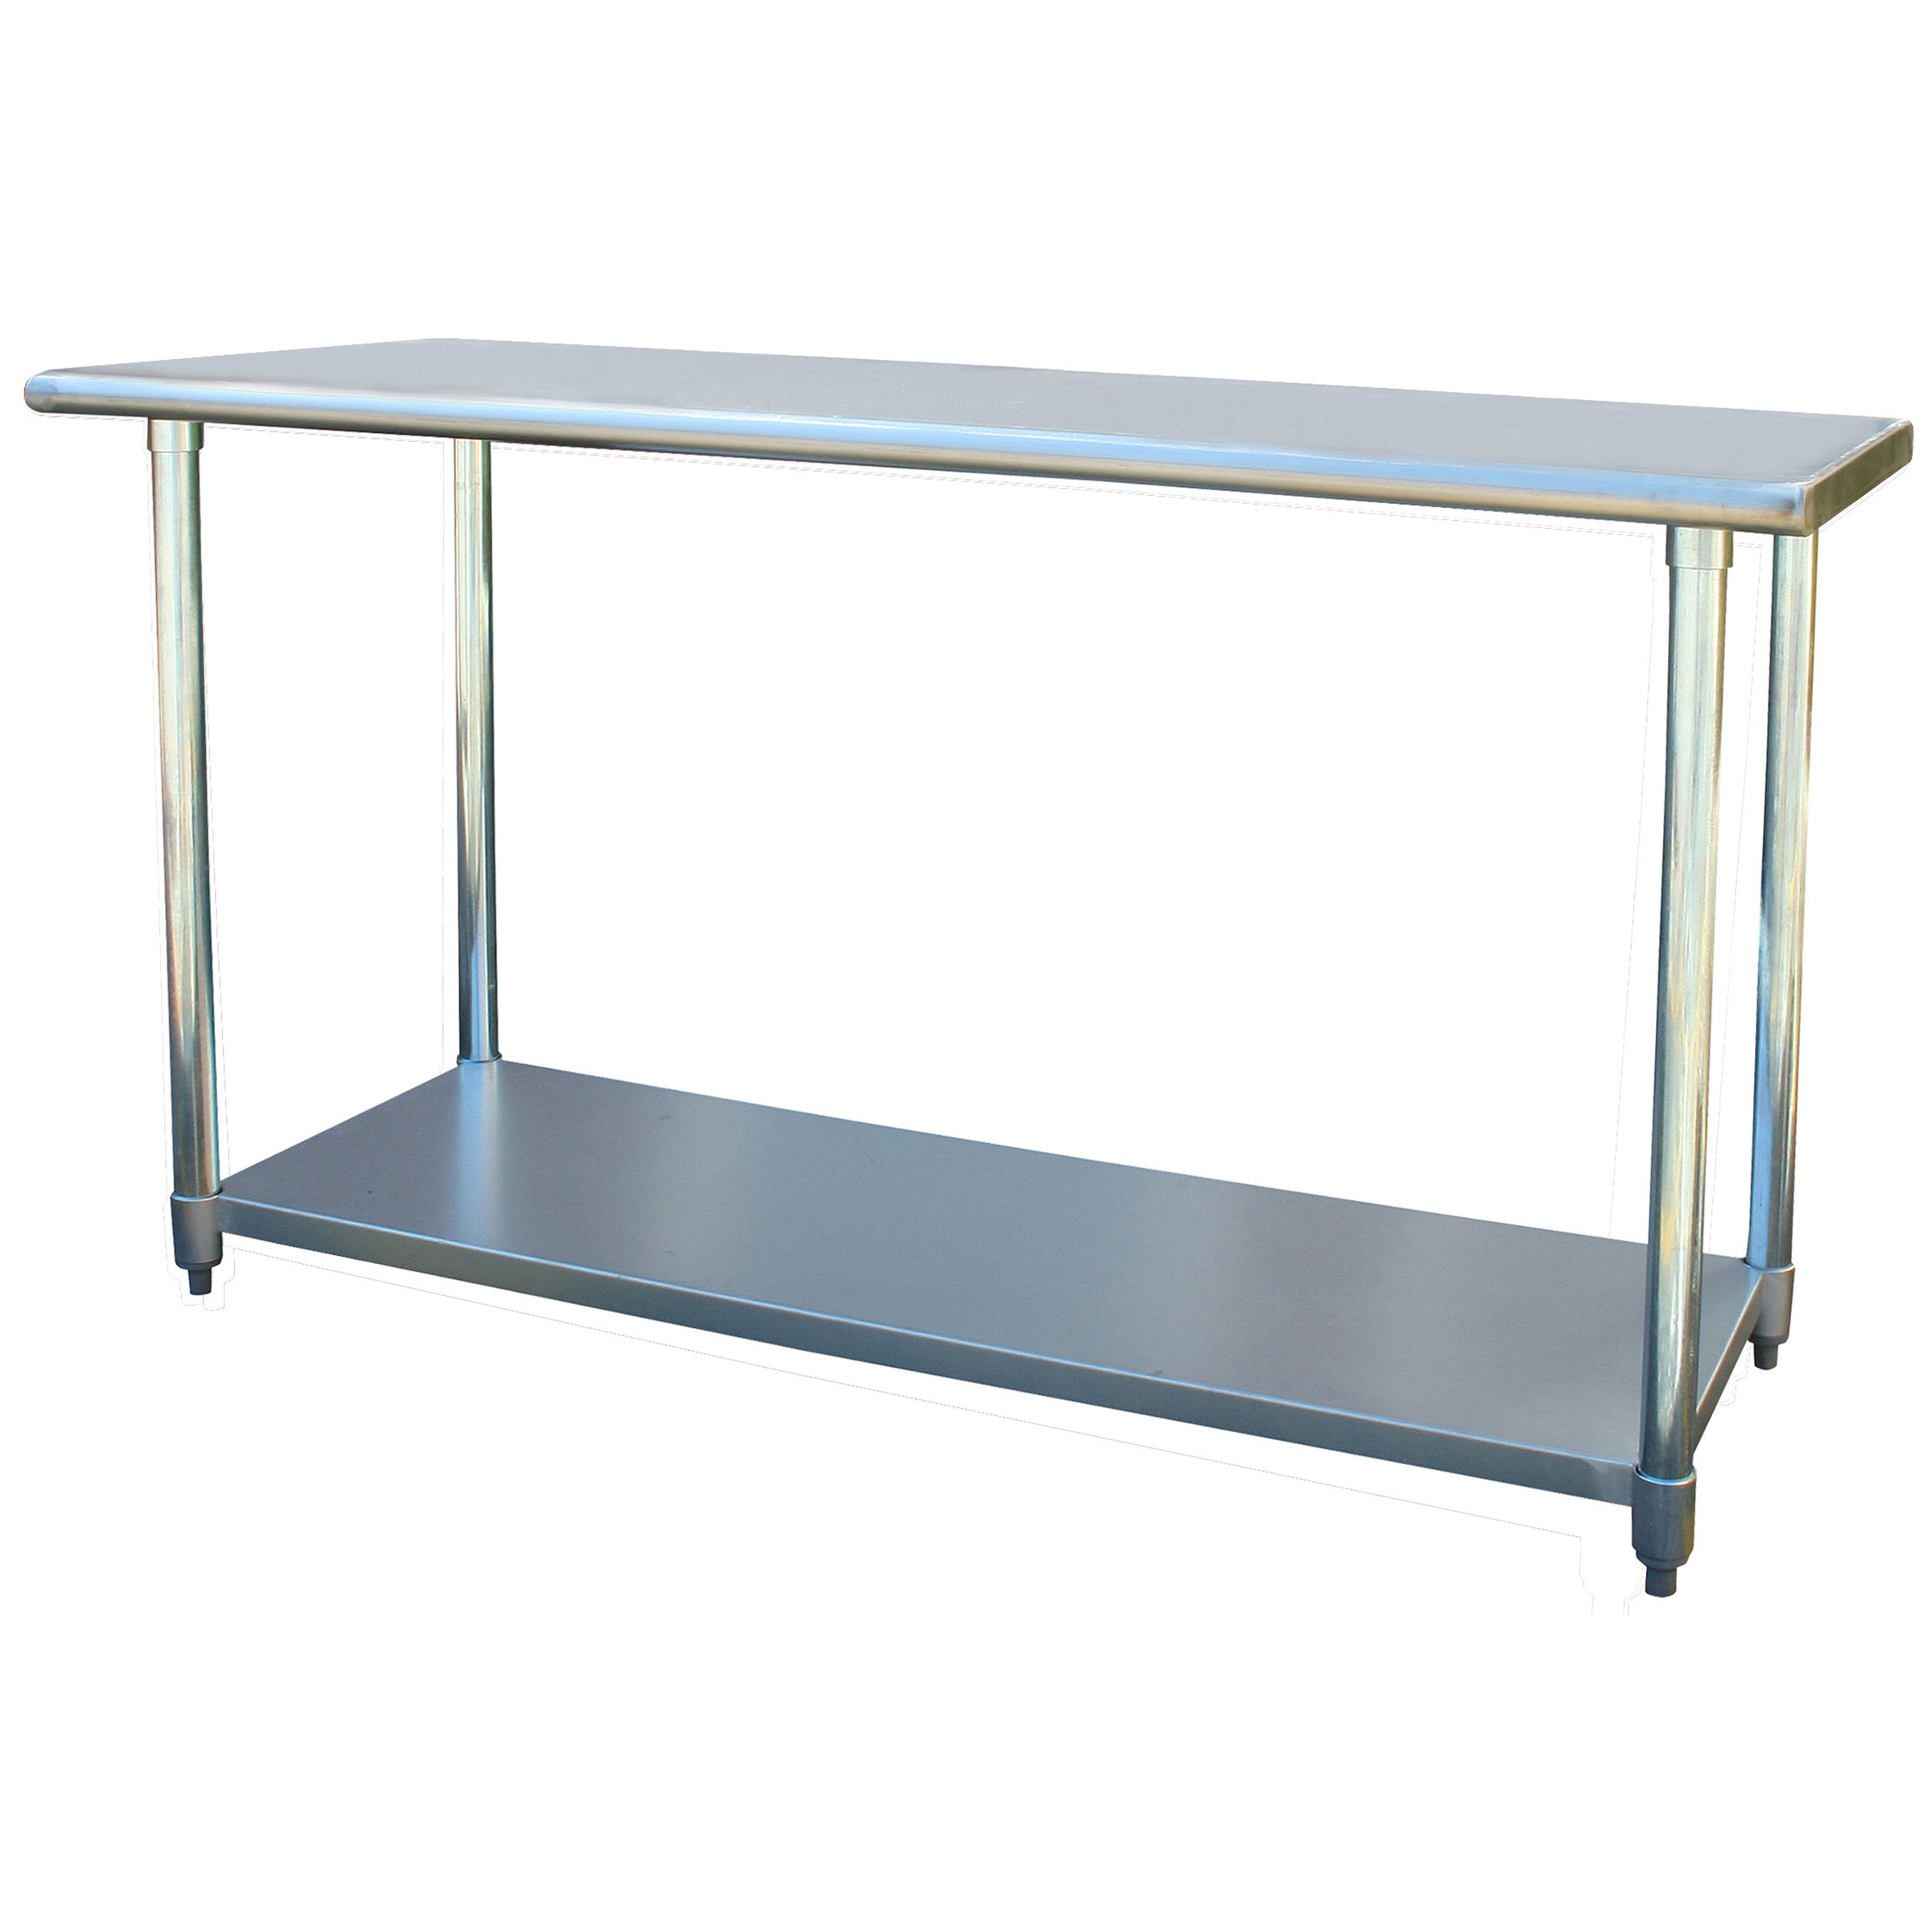 Sportsman Series Stainless Steel Work Table 24 x 60 Inches - BC